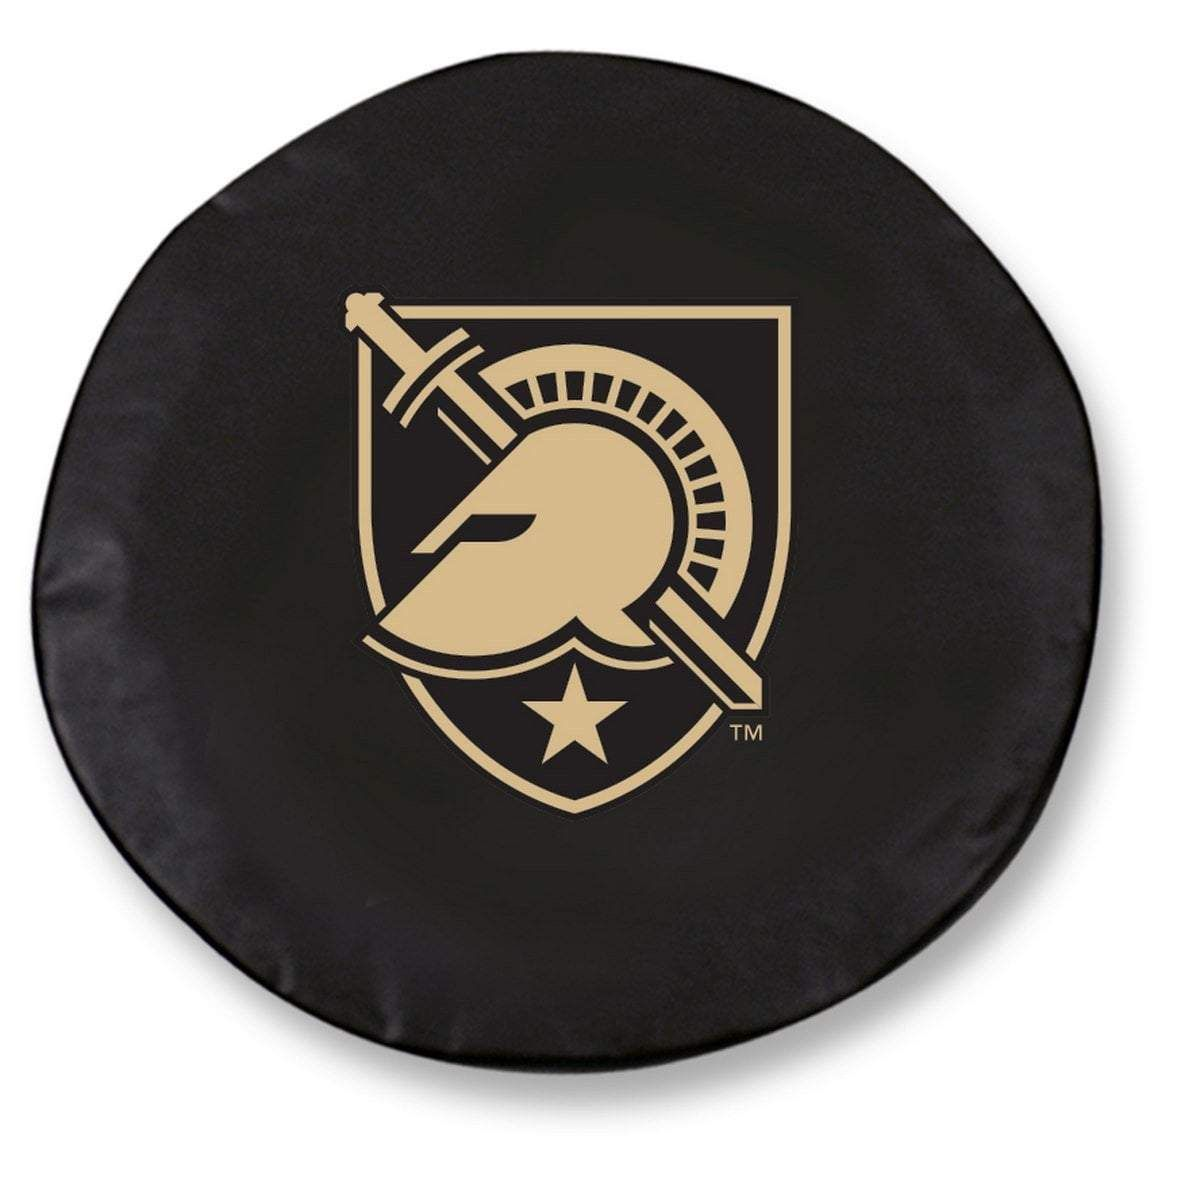 Army Black Knights Hbs Black Vinyl Fitted Spare Car Tire